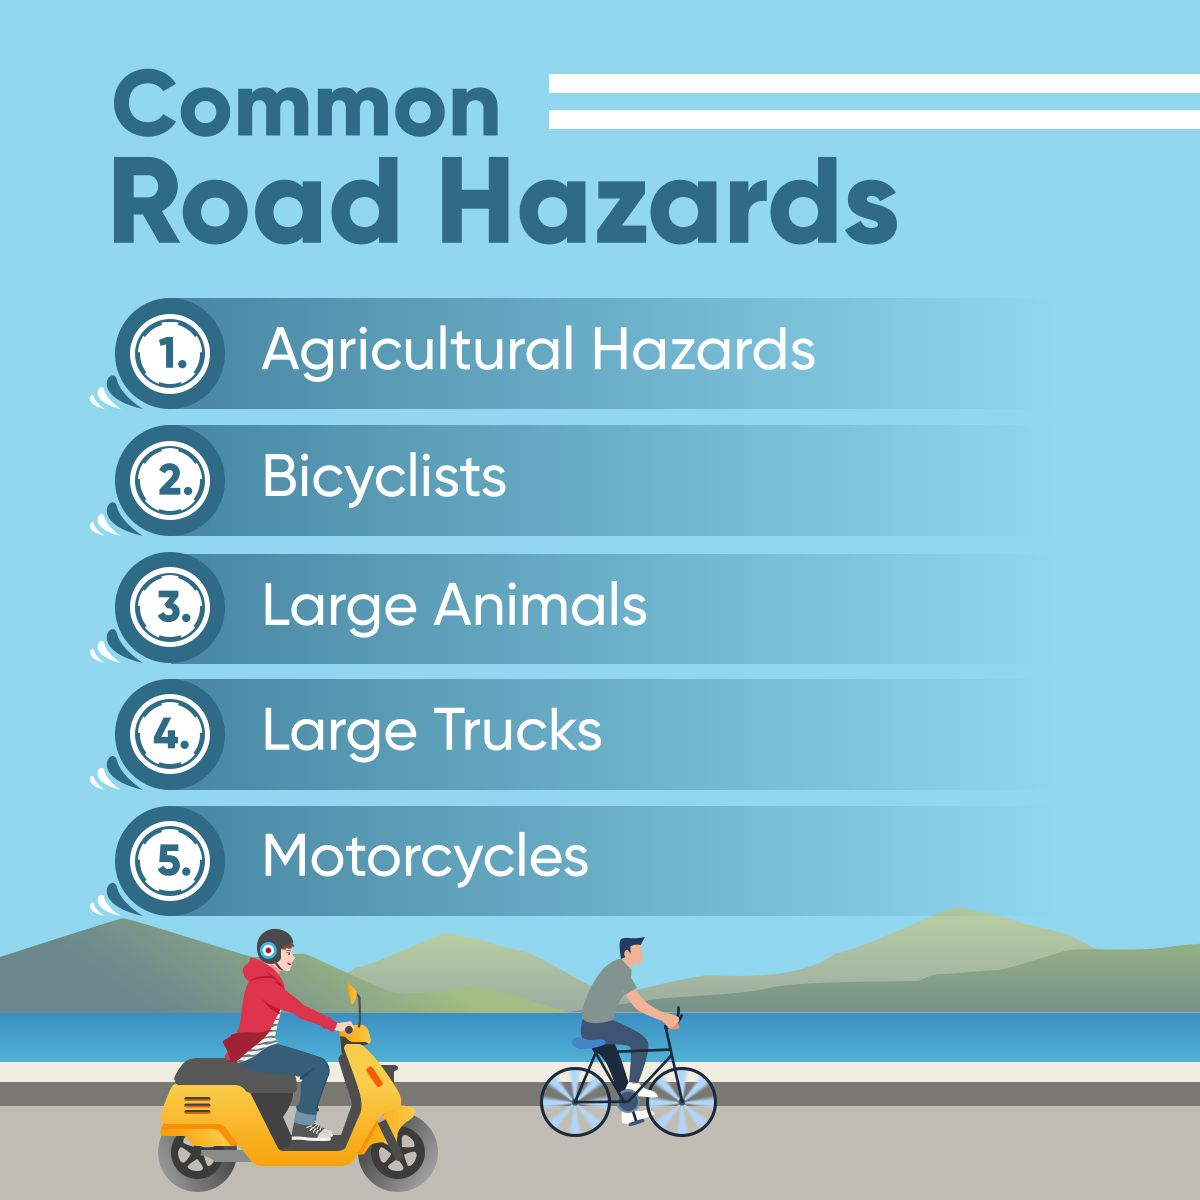 Common Road Hazards RoadHazards